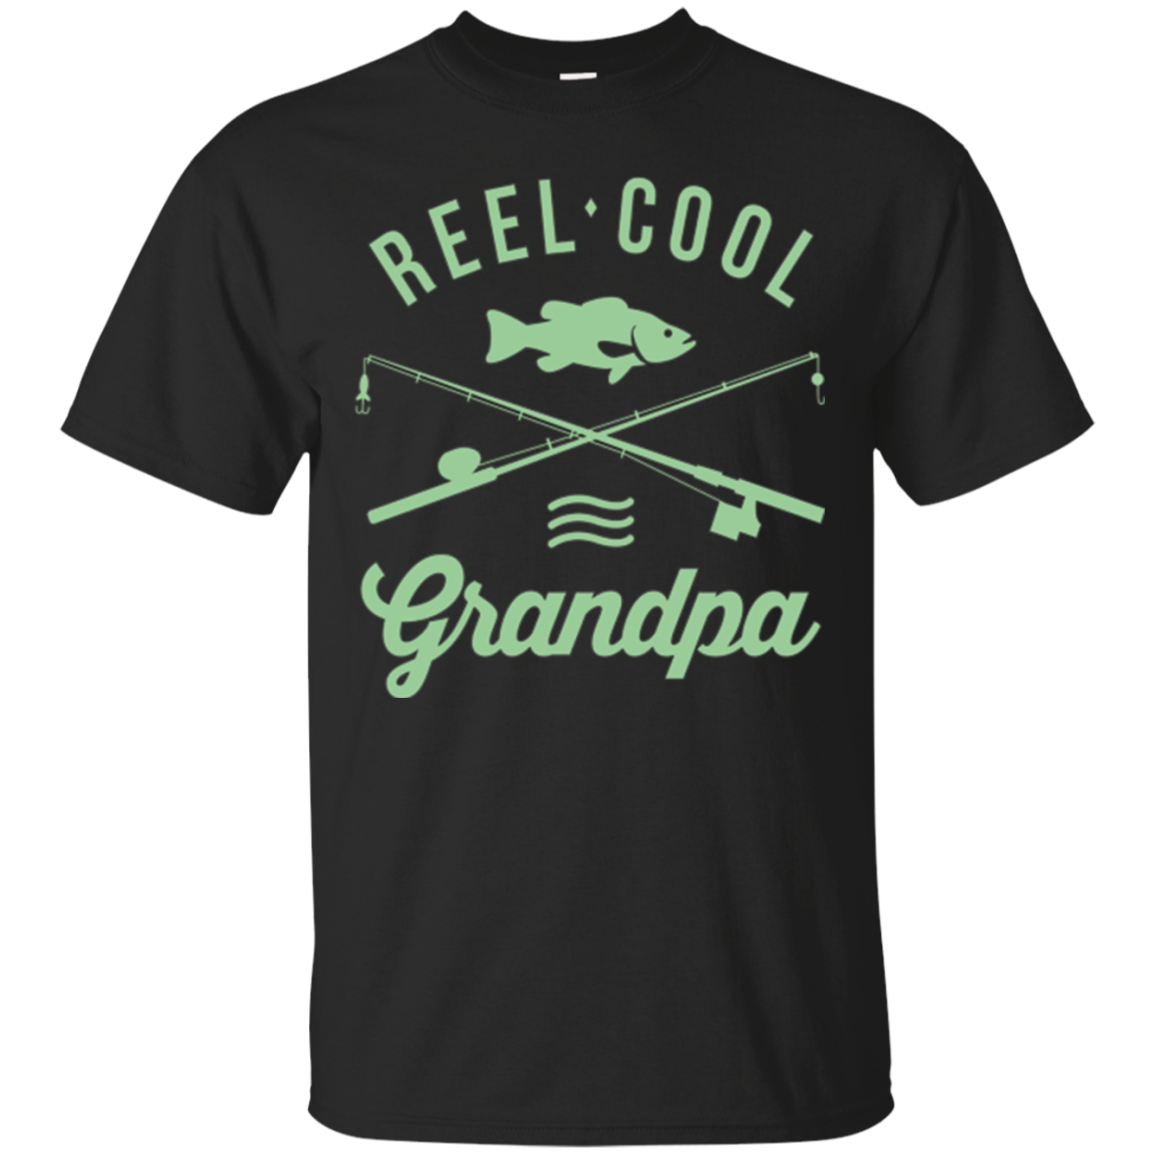 Funny Fishing T-shirt For Retired Grandpa Shirt Reel Cool